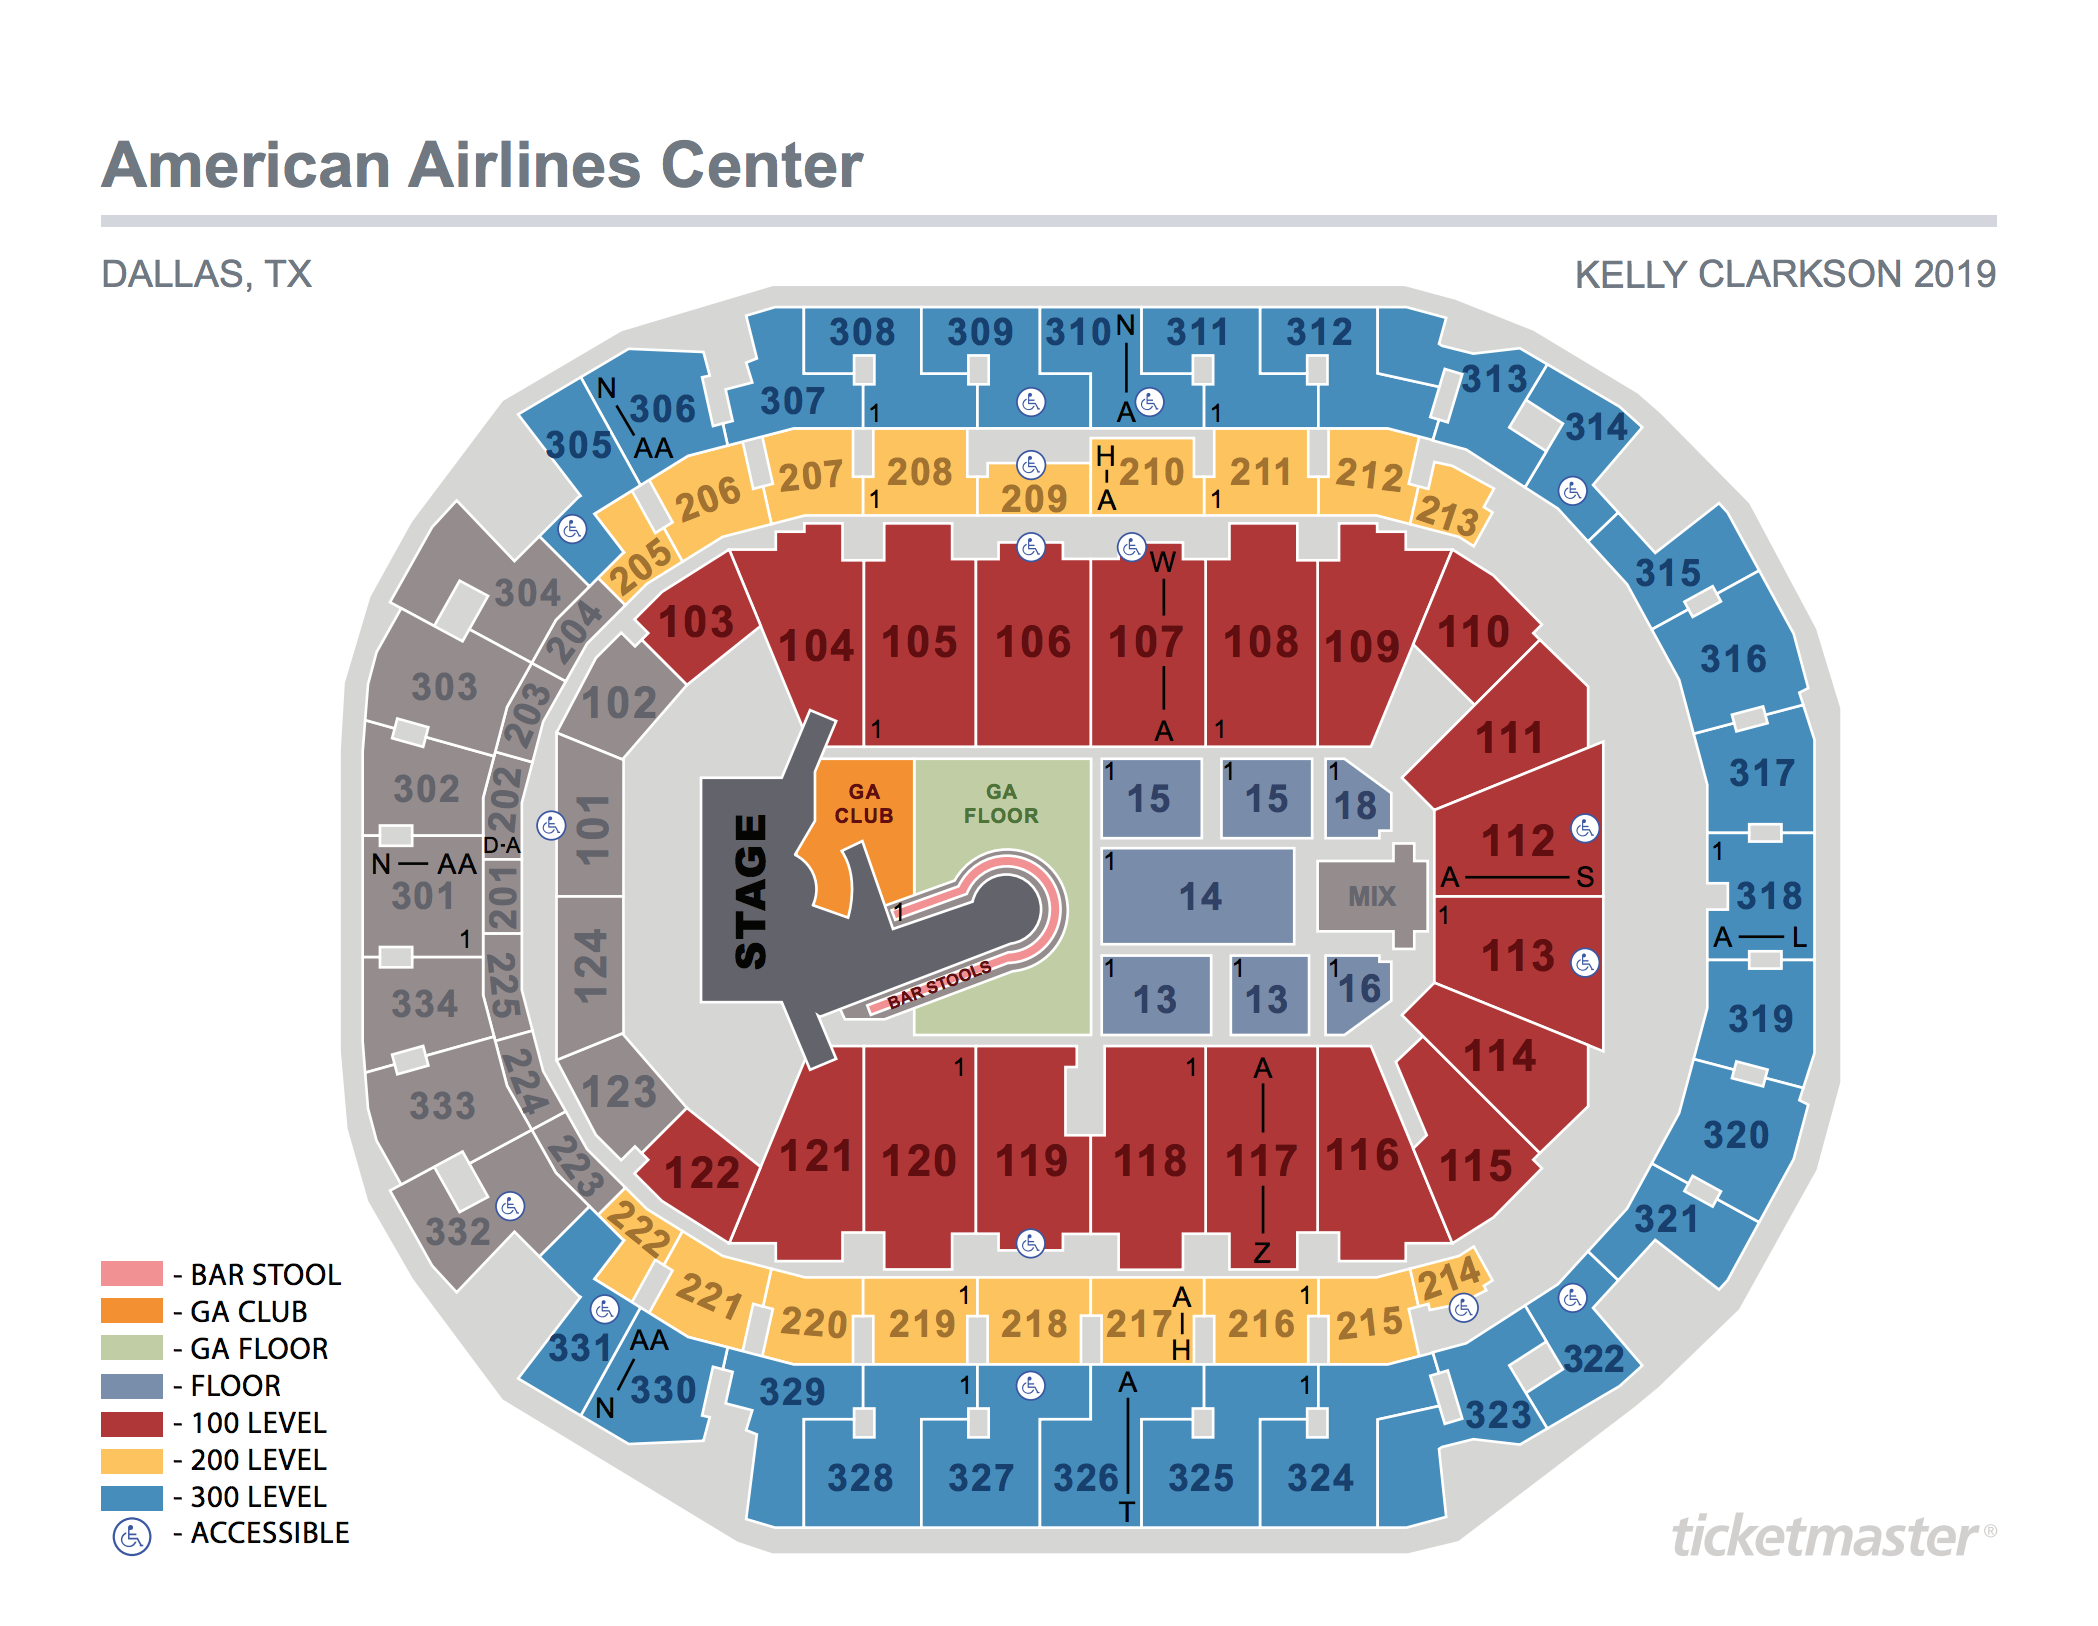 Kelly Clarkson Seating Map